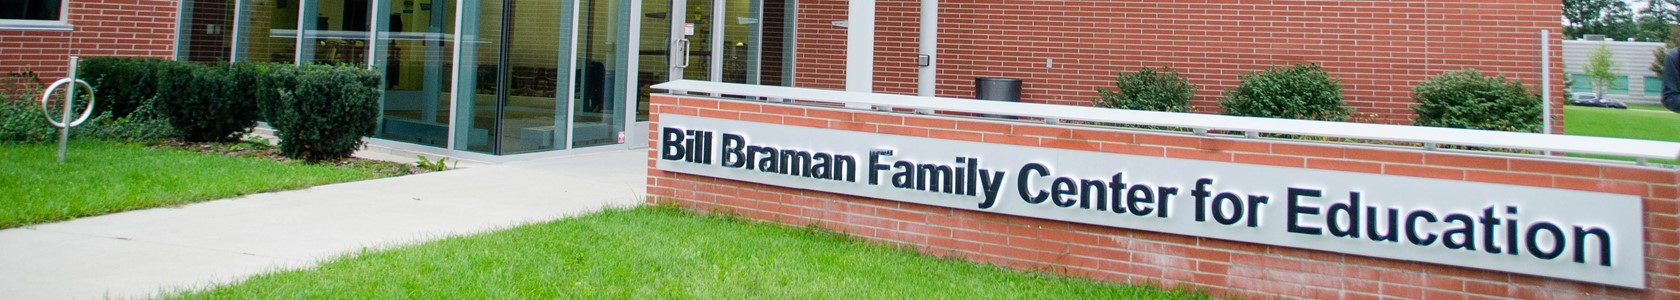 MCC's Greenville campus, Bill Braman Family Center for Education